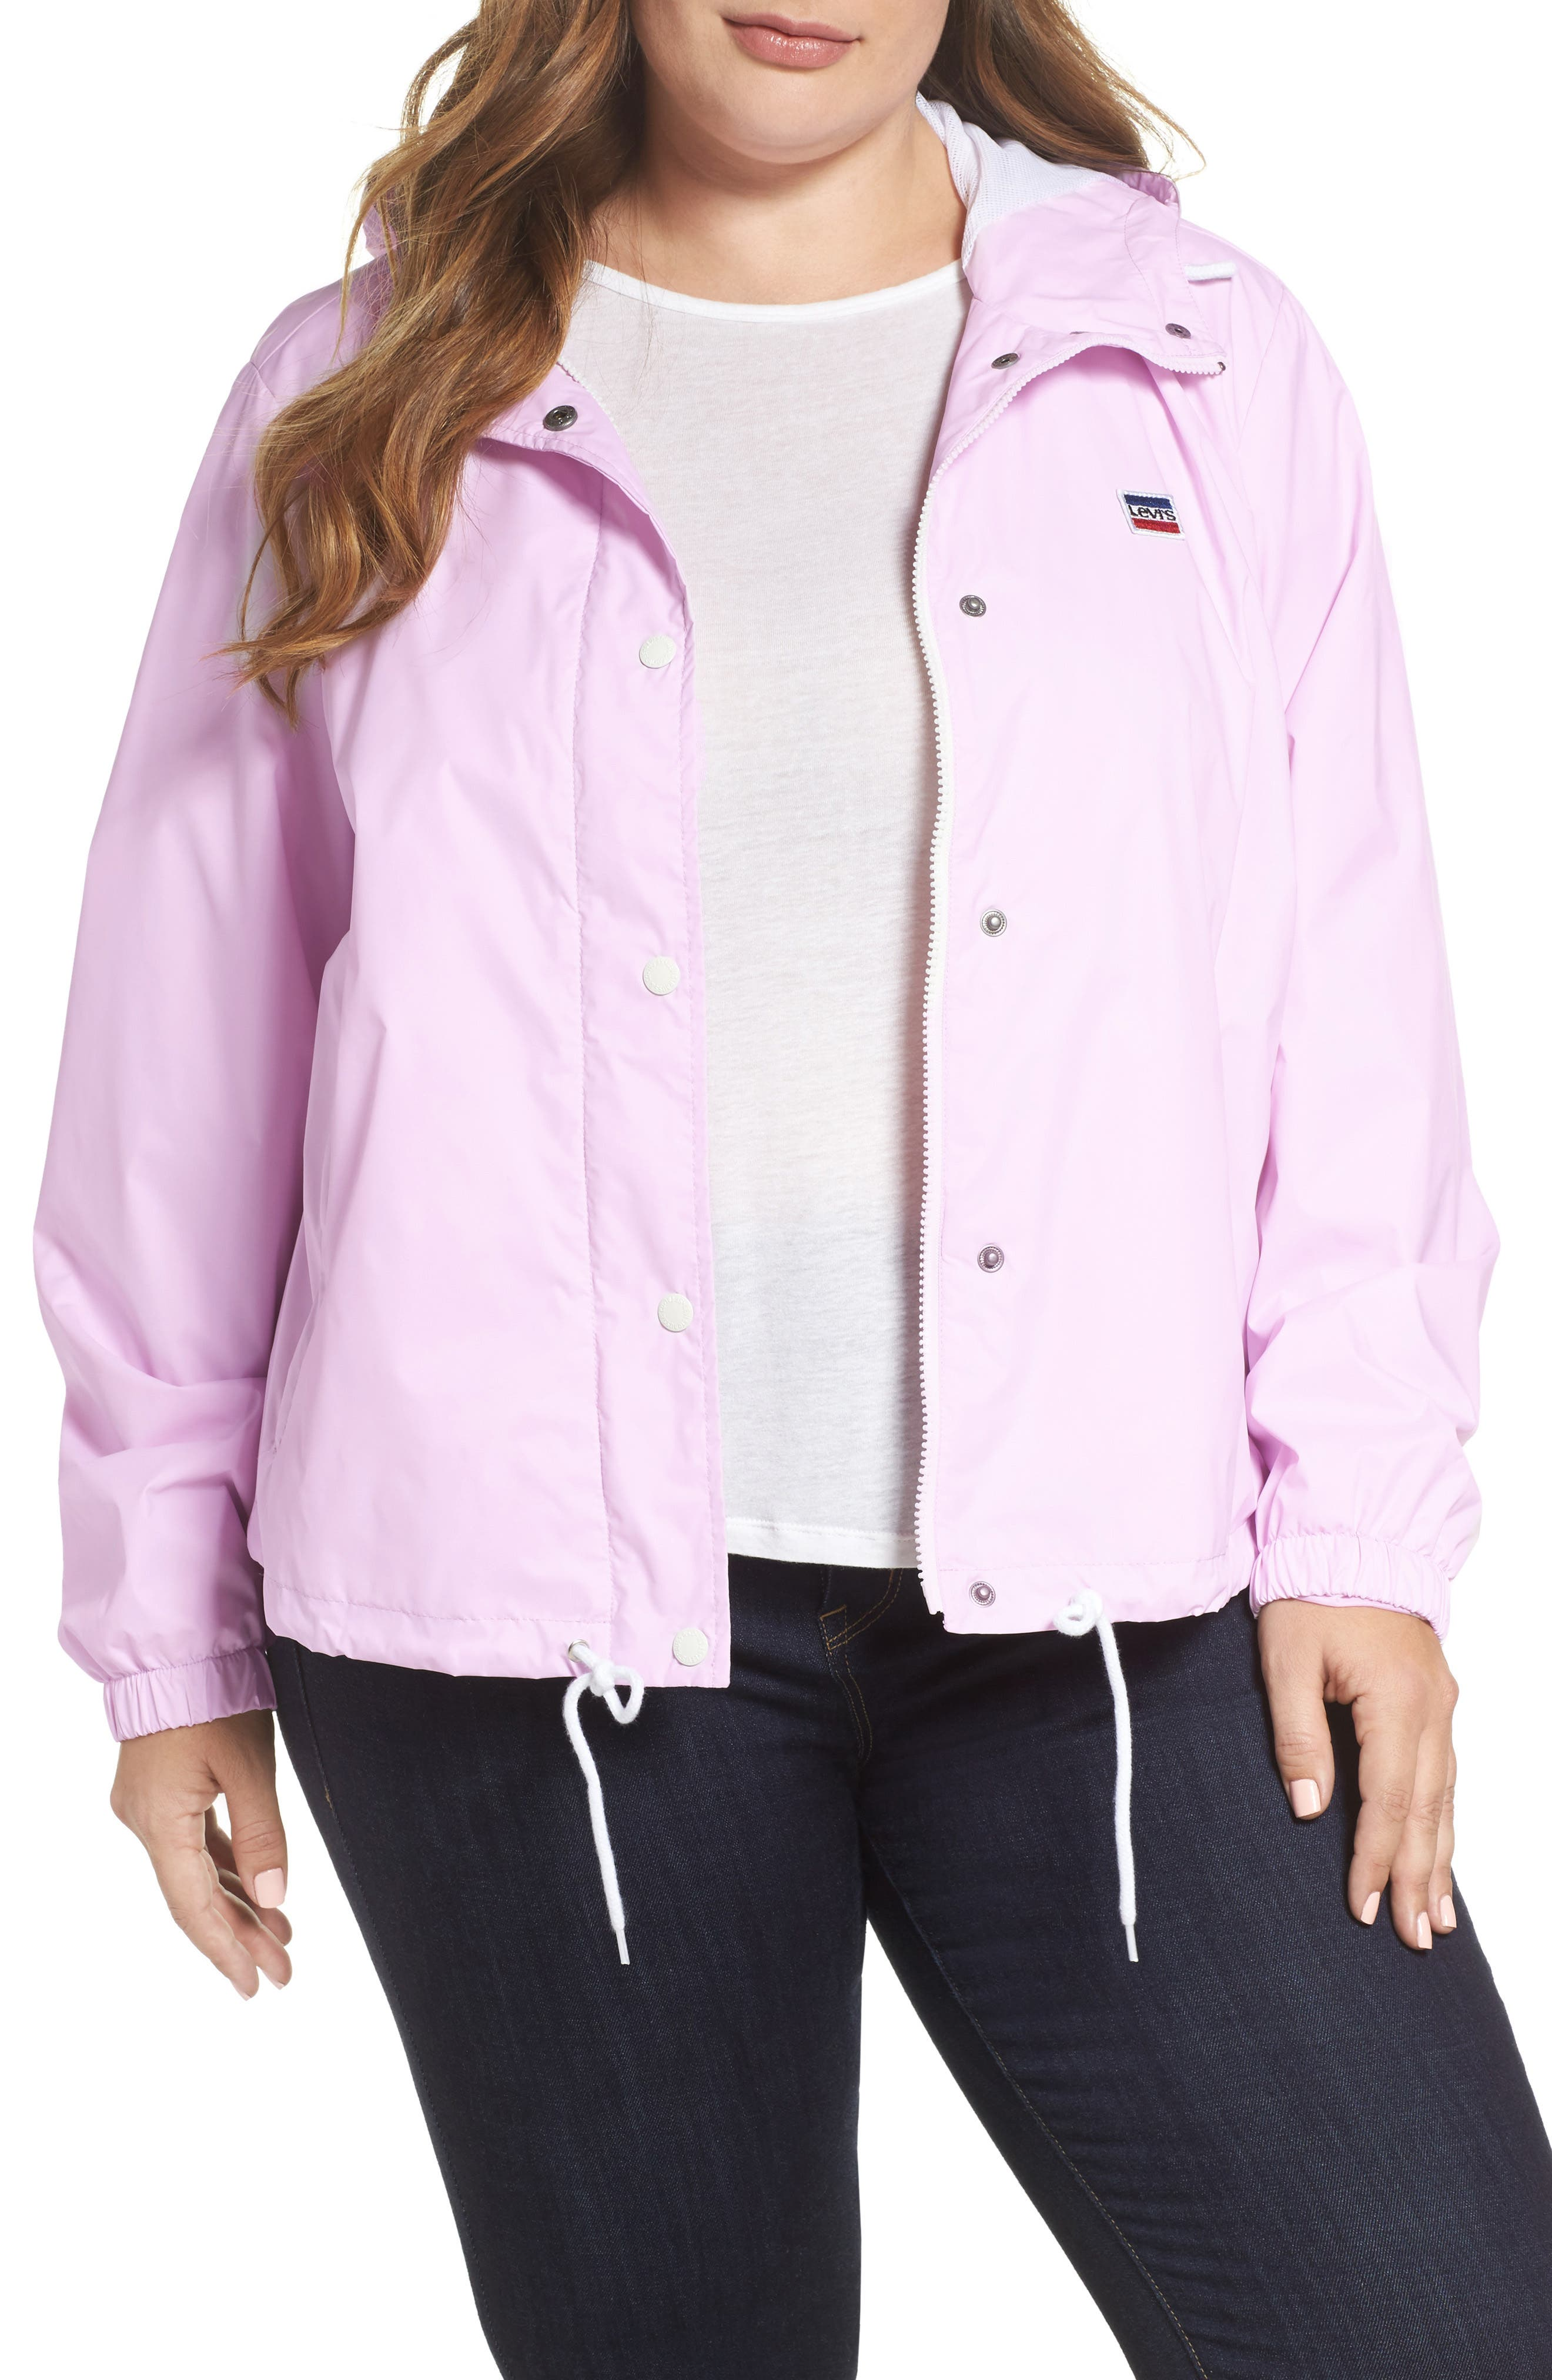 Retro Hooded Coach's Jacket,                             Main thumbnail 4, color,